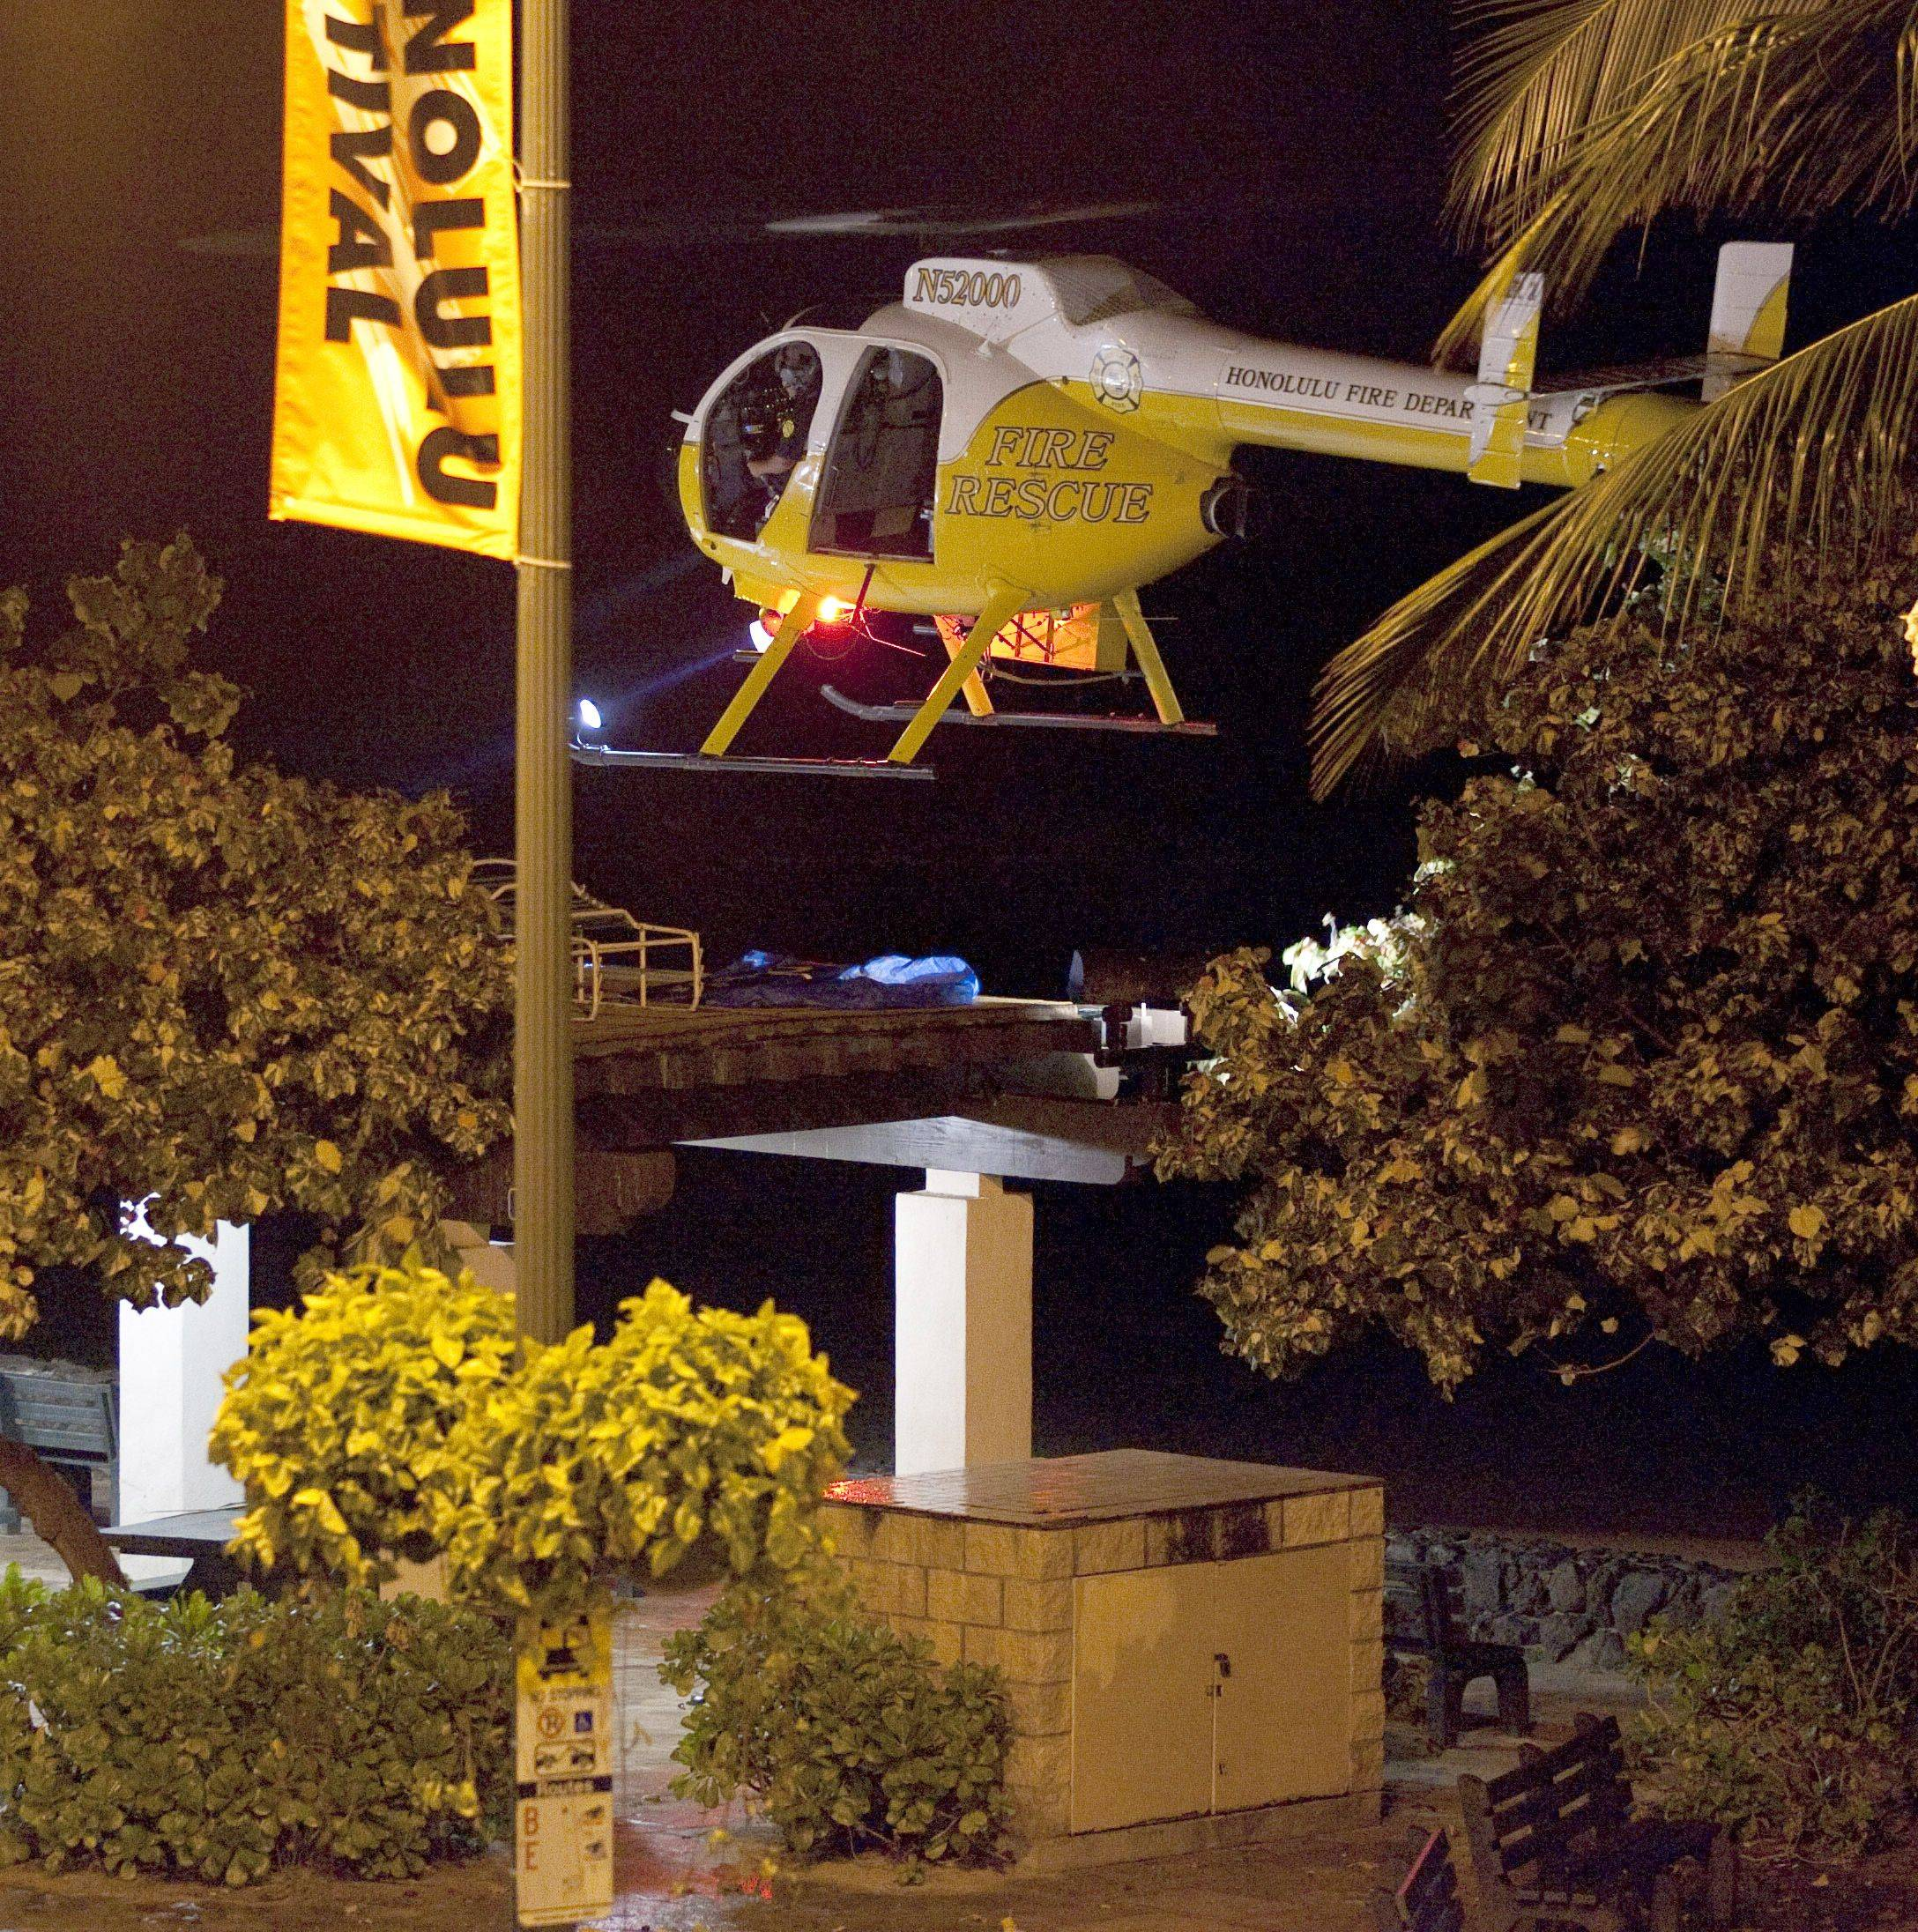 A Honolulu Fire Department helicopter hovers low over Waikiki Beach attempting to chase away some people who had wandered onto the beach early Friday morning, March 11, 2011 in Honolulu.